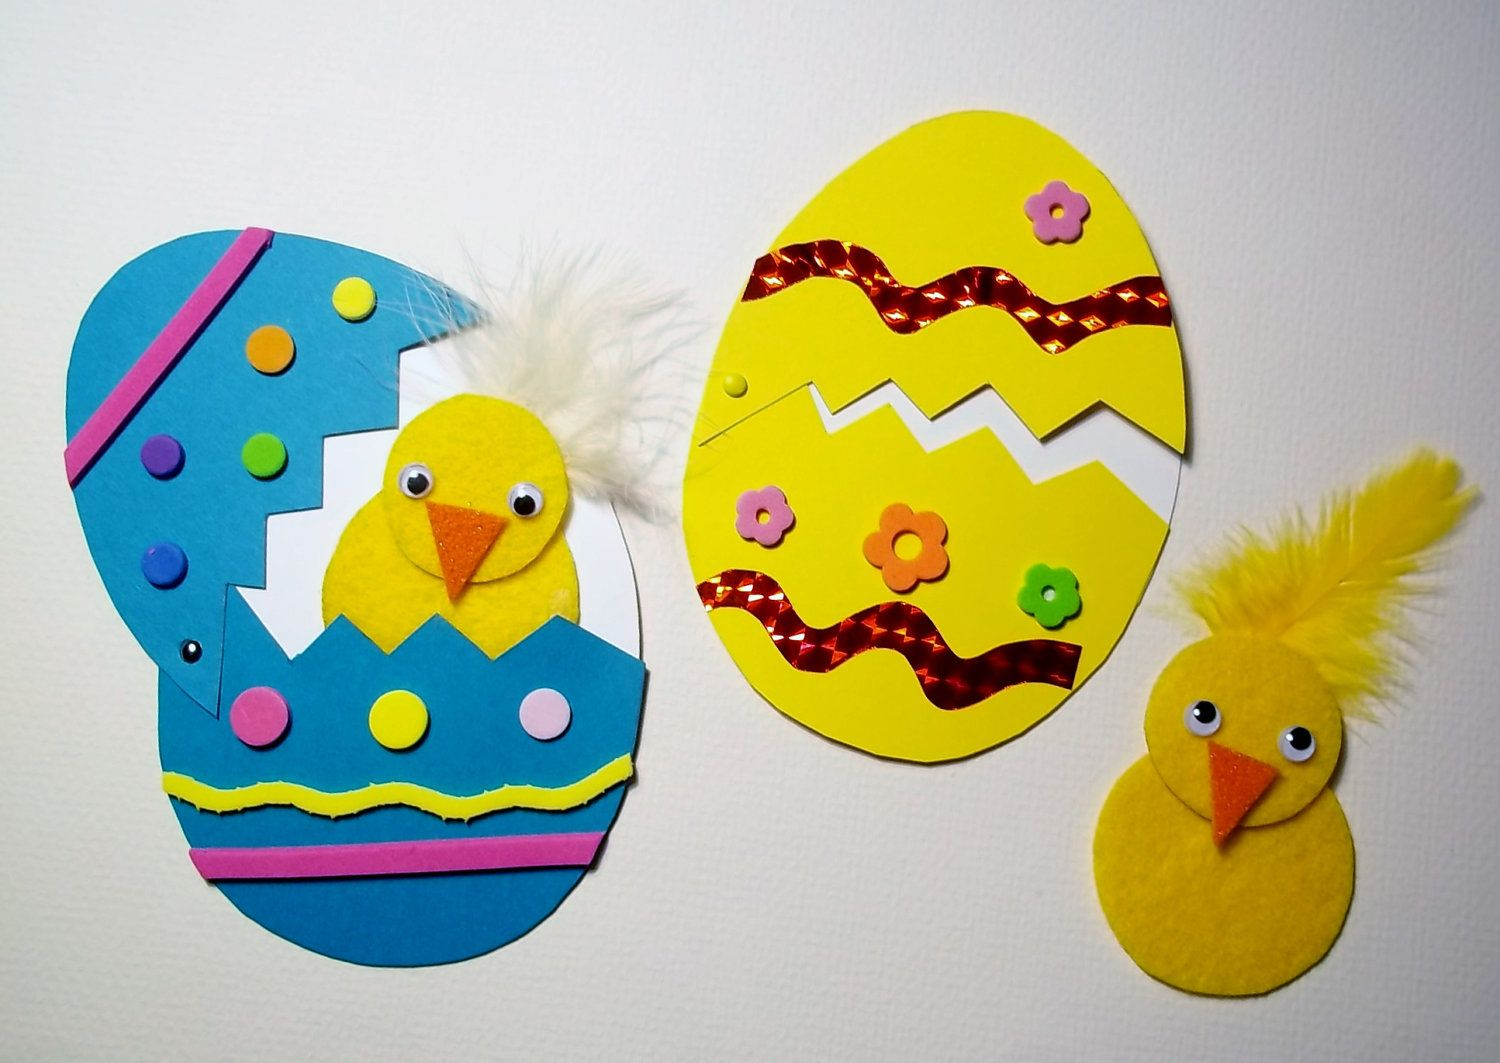 Creative Easter Newborn Chicks Craft With Yellow And White Furs Also Patterned Blue Eggs